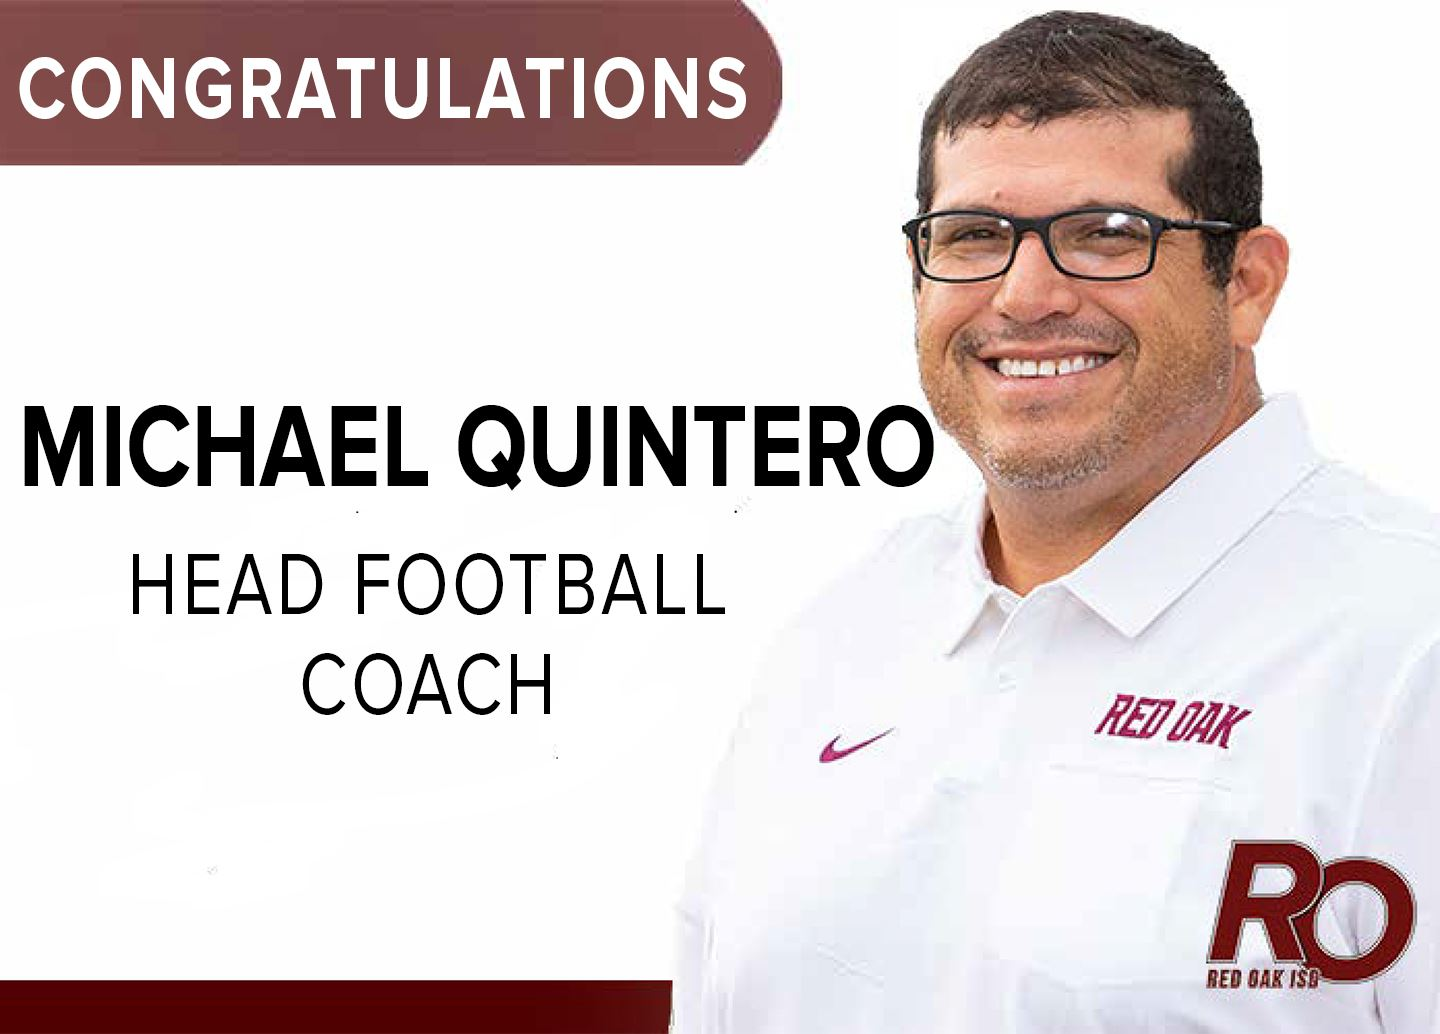 Congratulations to Michael Quintero, new Head Football Coach